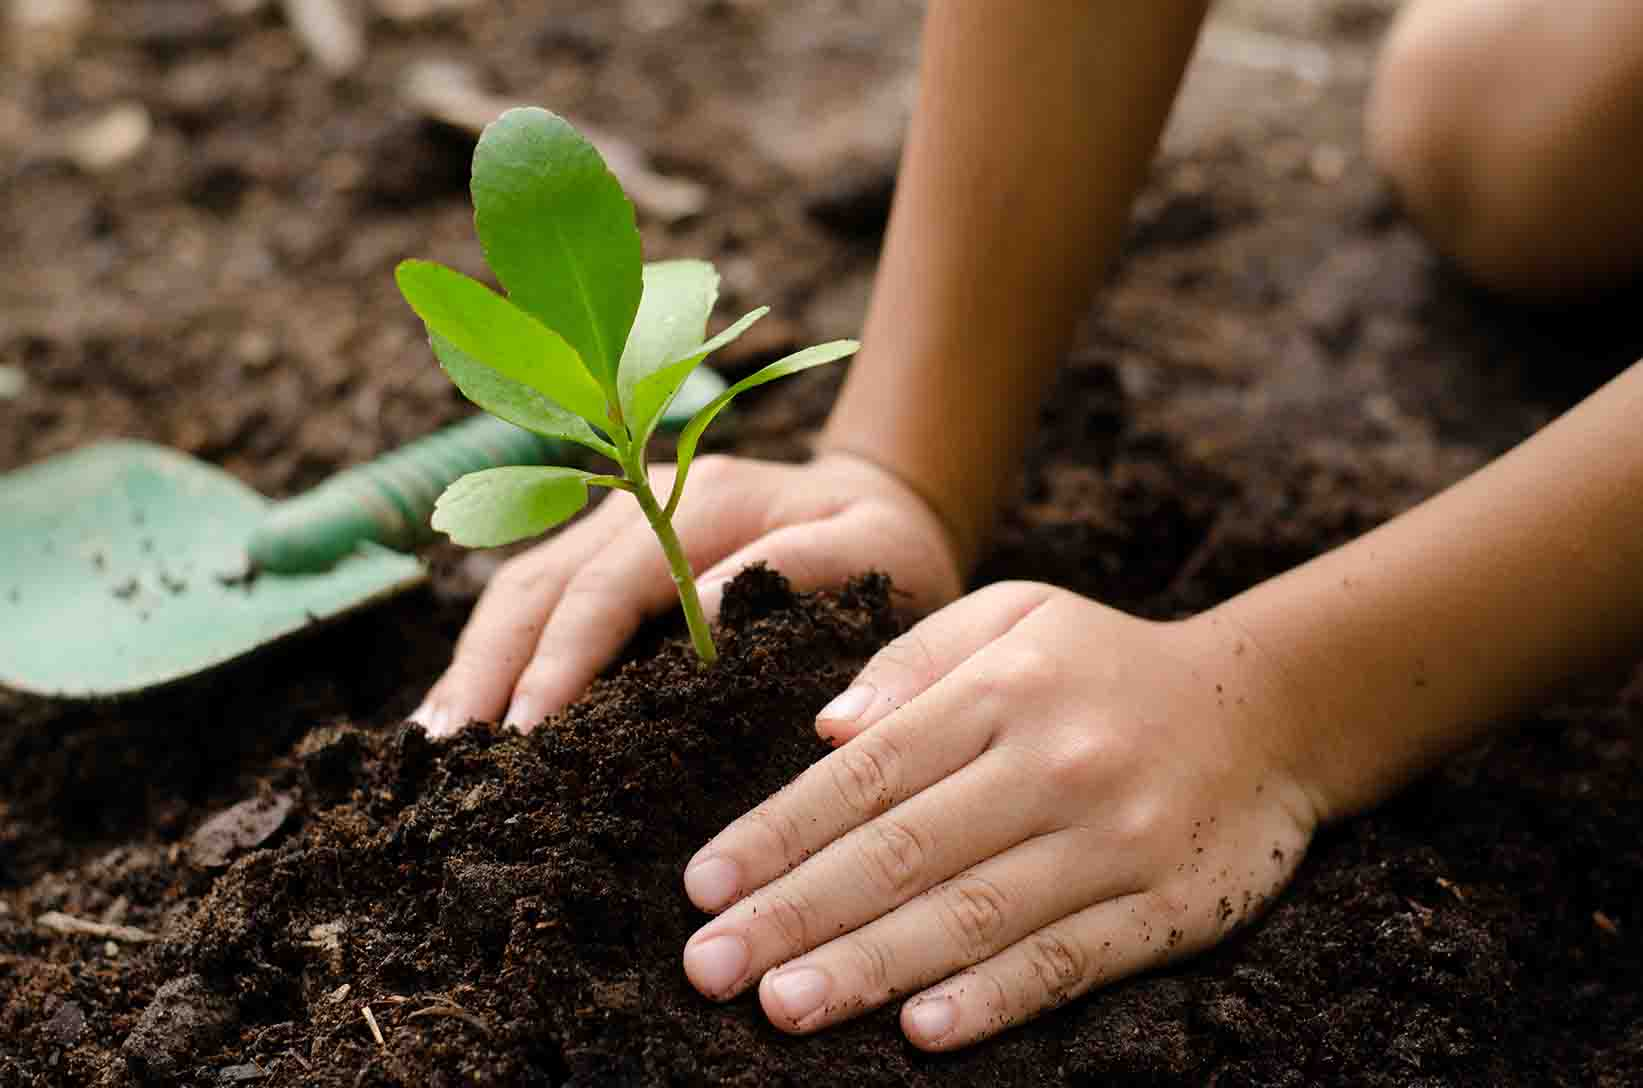 A child's hands plant a green seedling in the earth